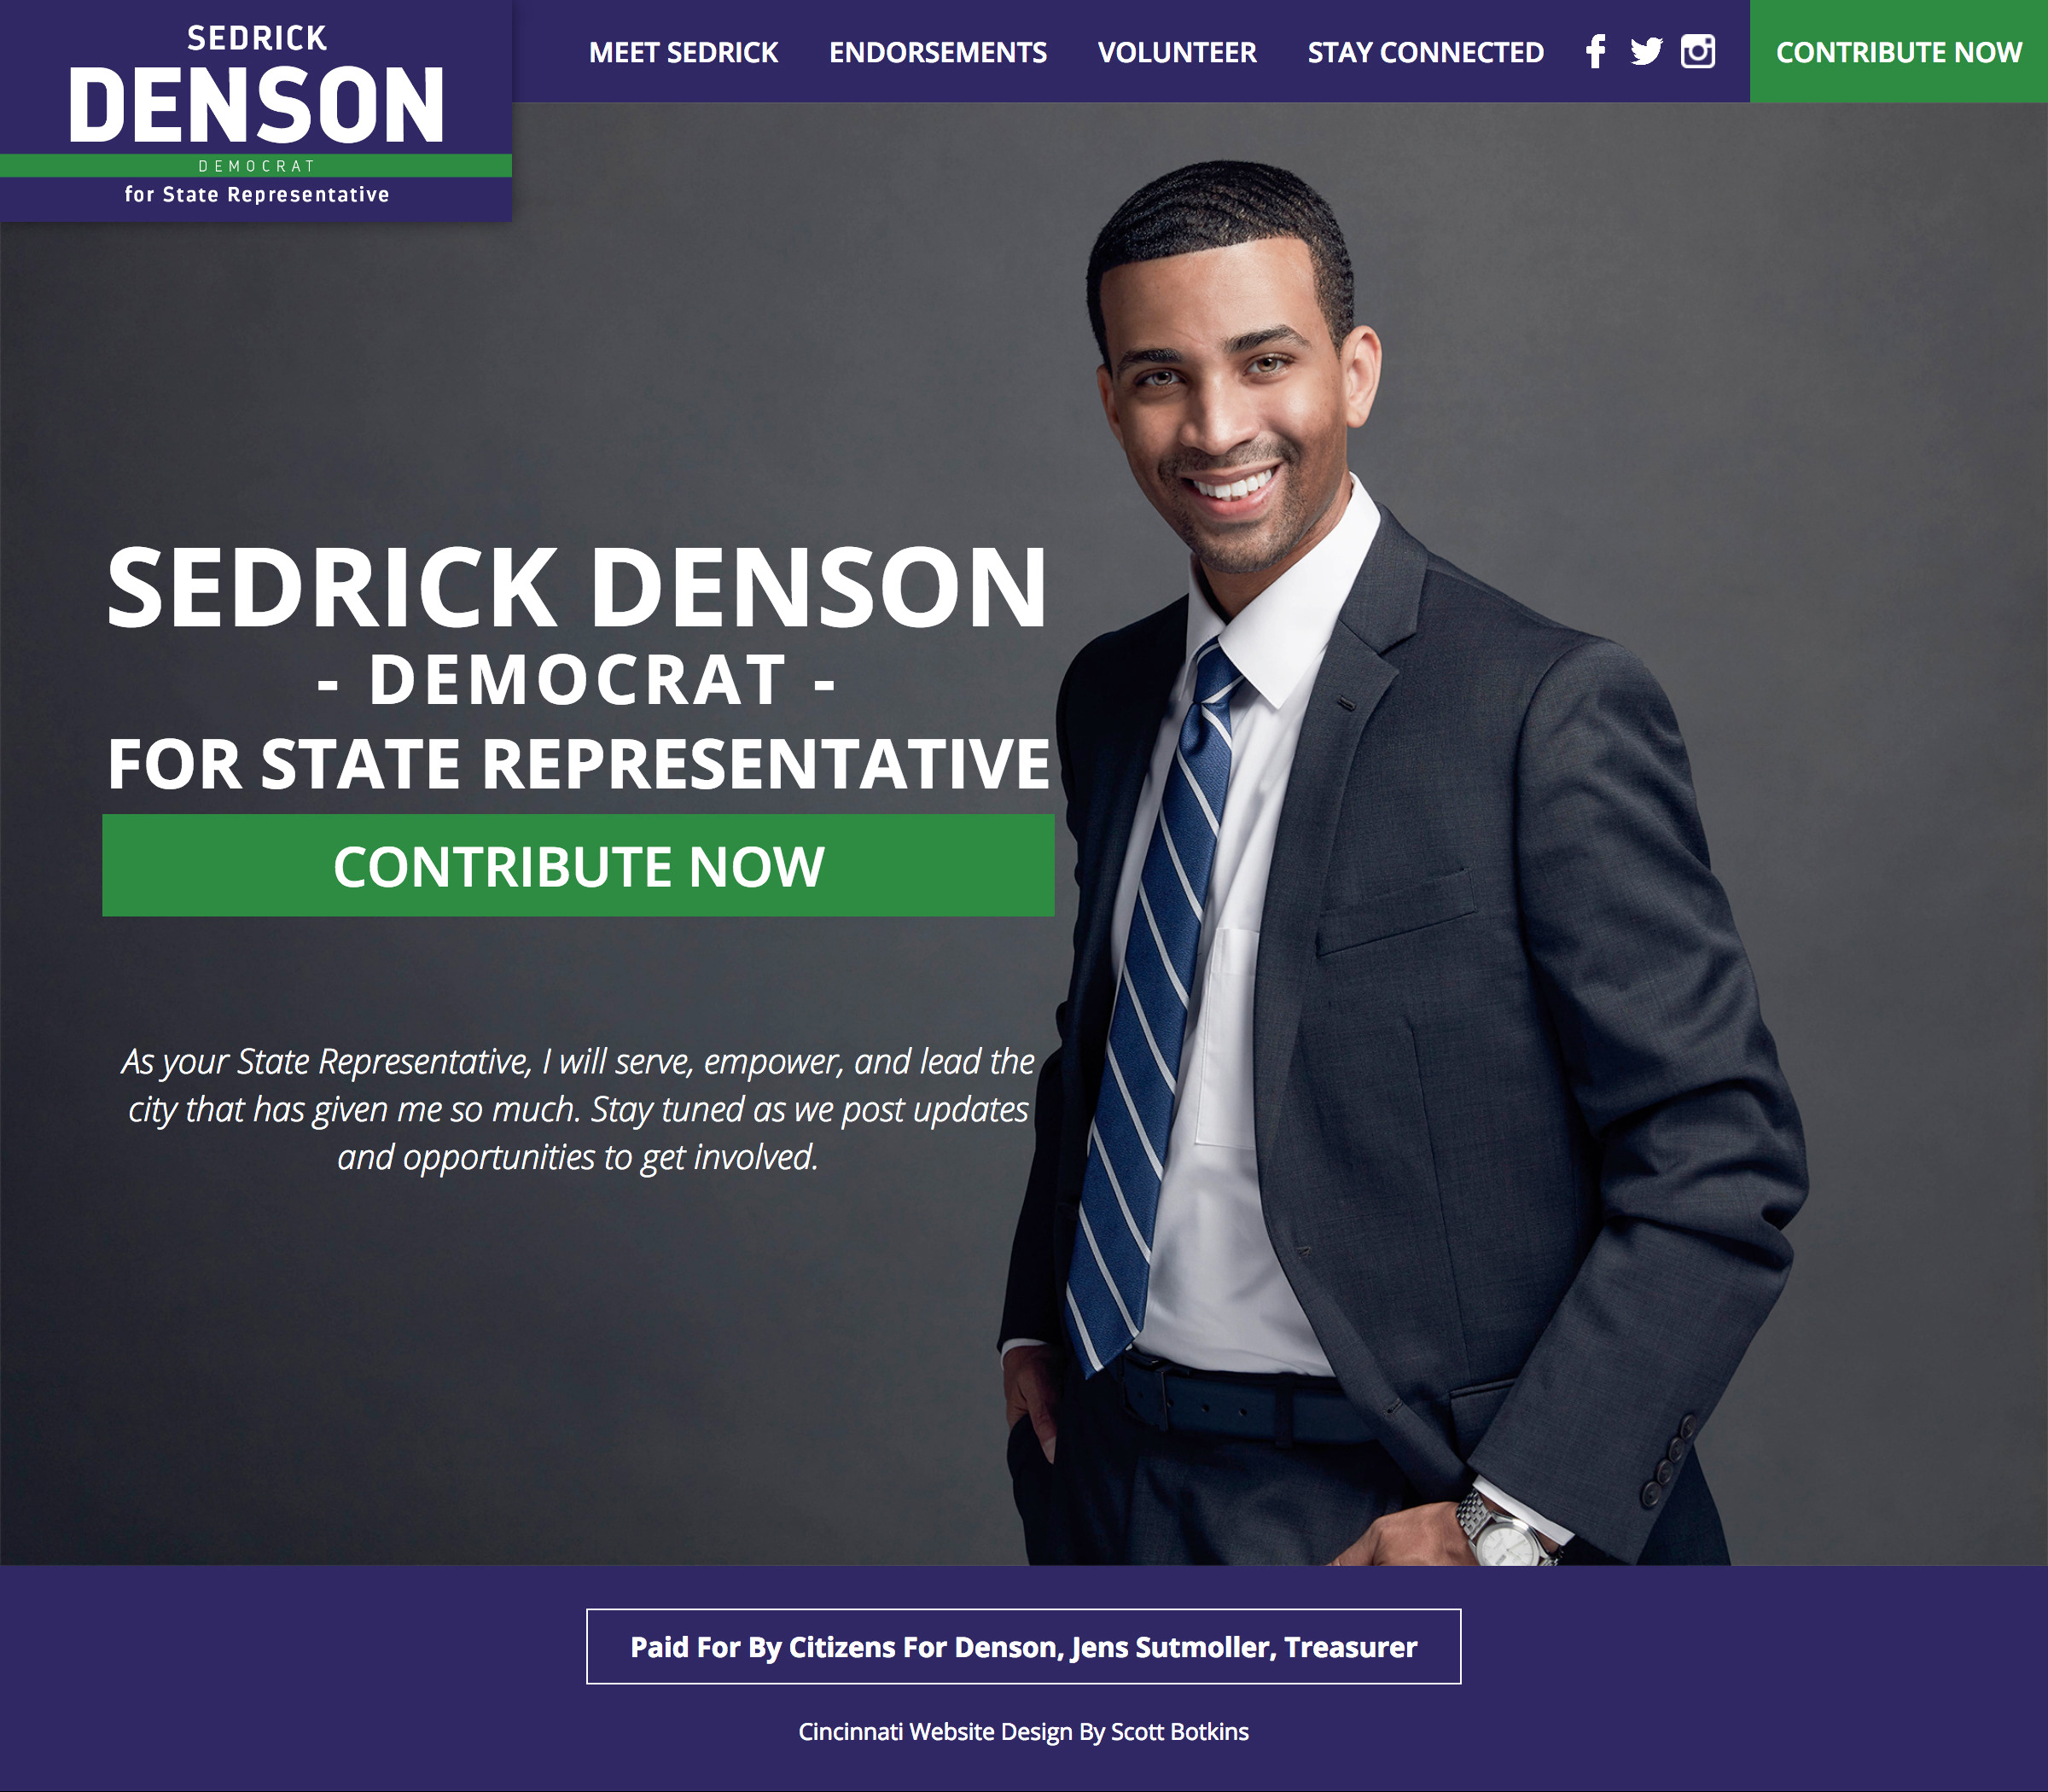 Sedrick Denson For State Representative